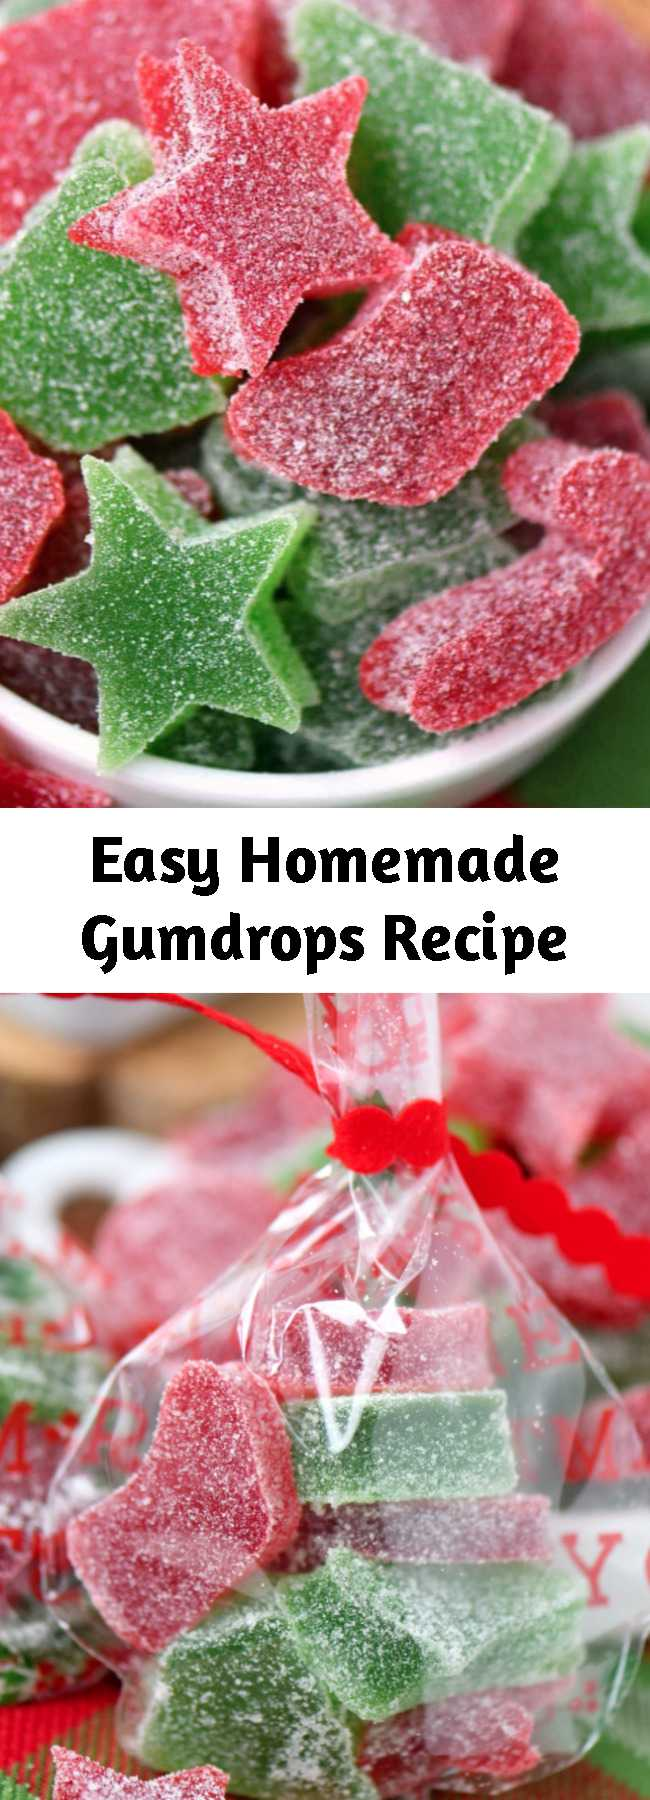 Easy Homemade Gumdrops Recipe - These Homemade Gumdrops are the perfect treat to make for friends and family during the holidays! Made with just a handful of ingredients – including applesauce – this easy gumdrop are sure to become a holiday tradition! A Christmas favorite with our family!